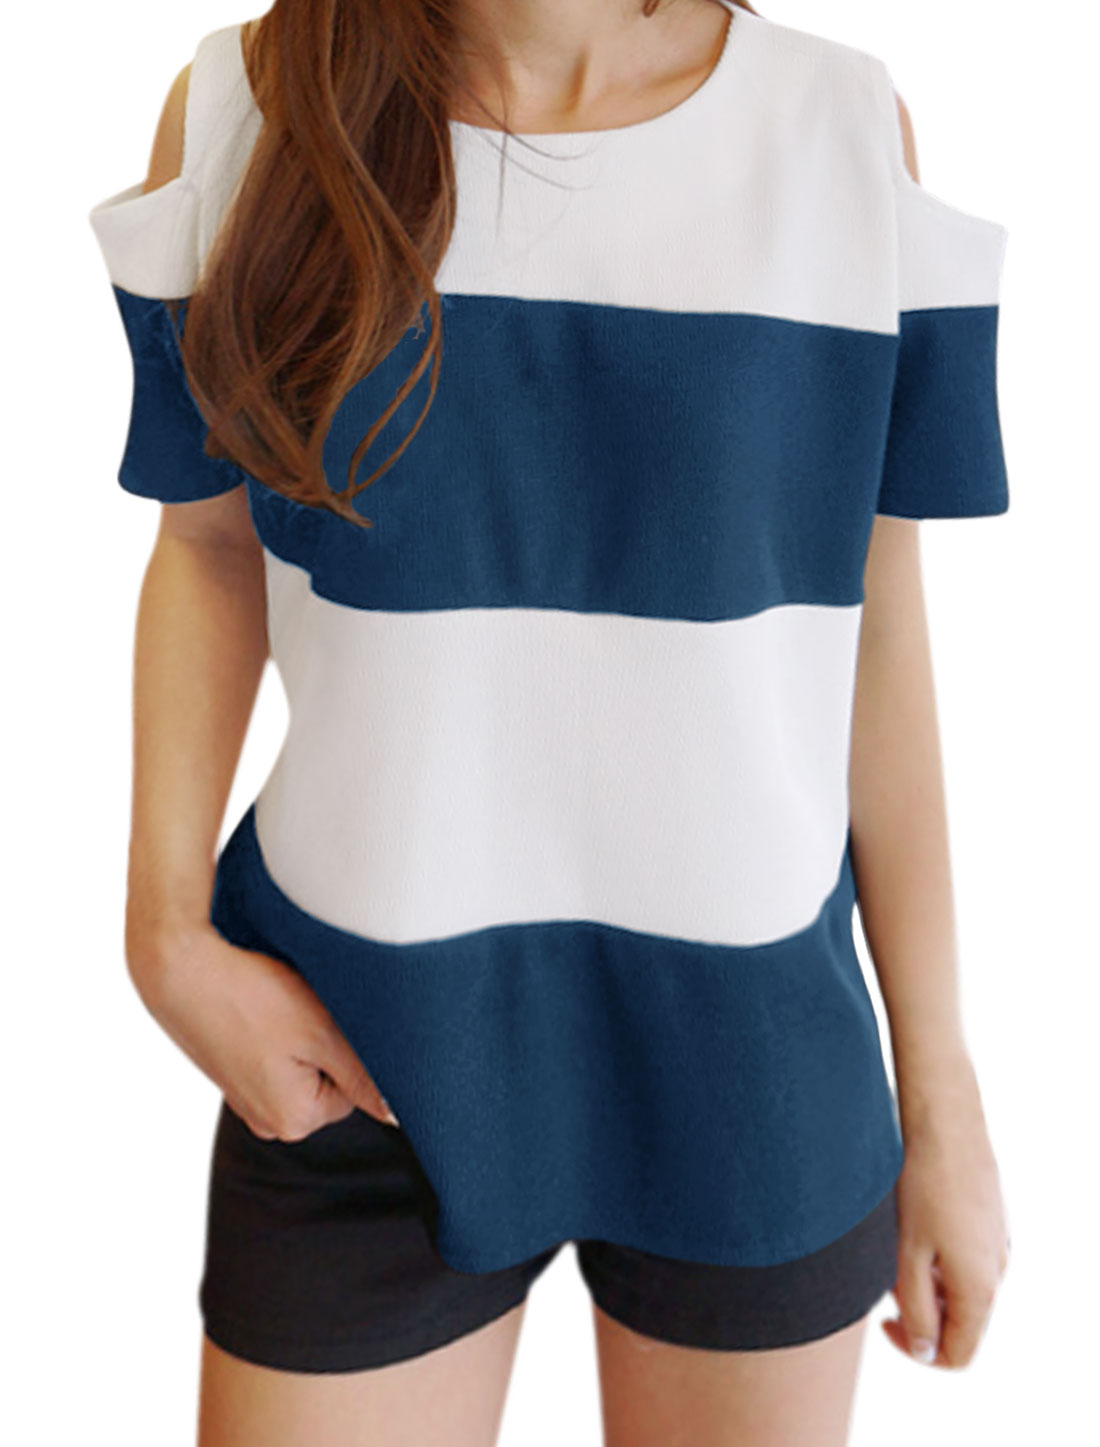 Women Cut Out Shoulder Stripes Hi-Lo Top Blue White XS